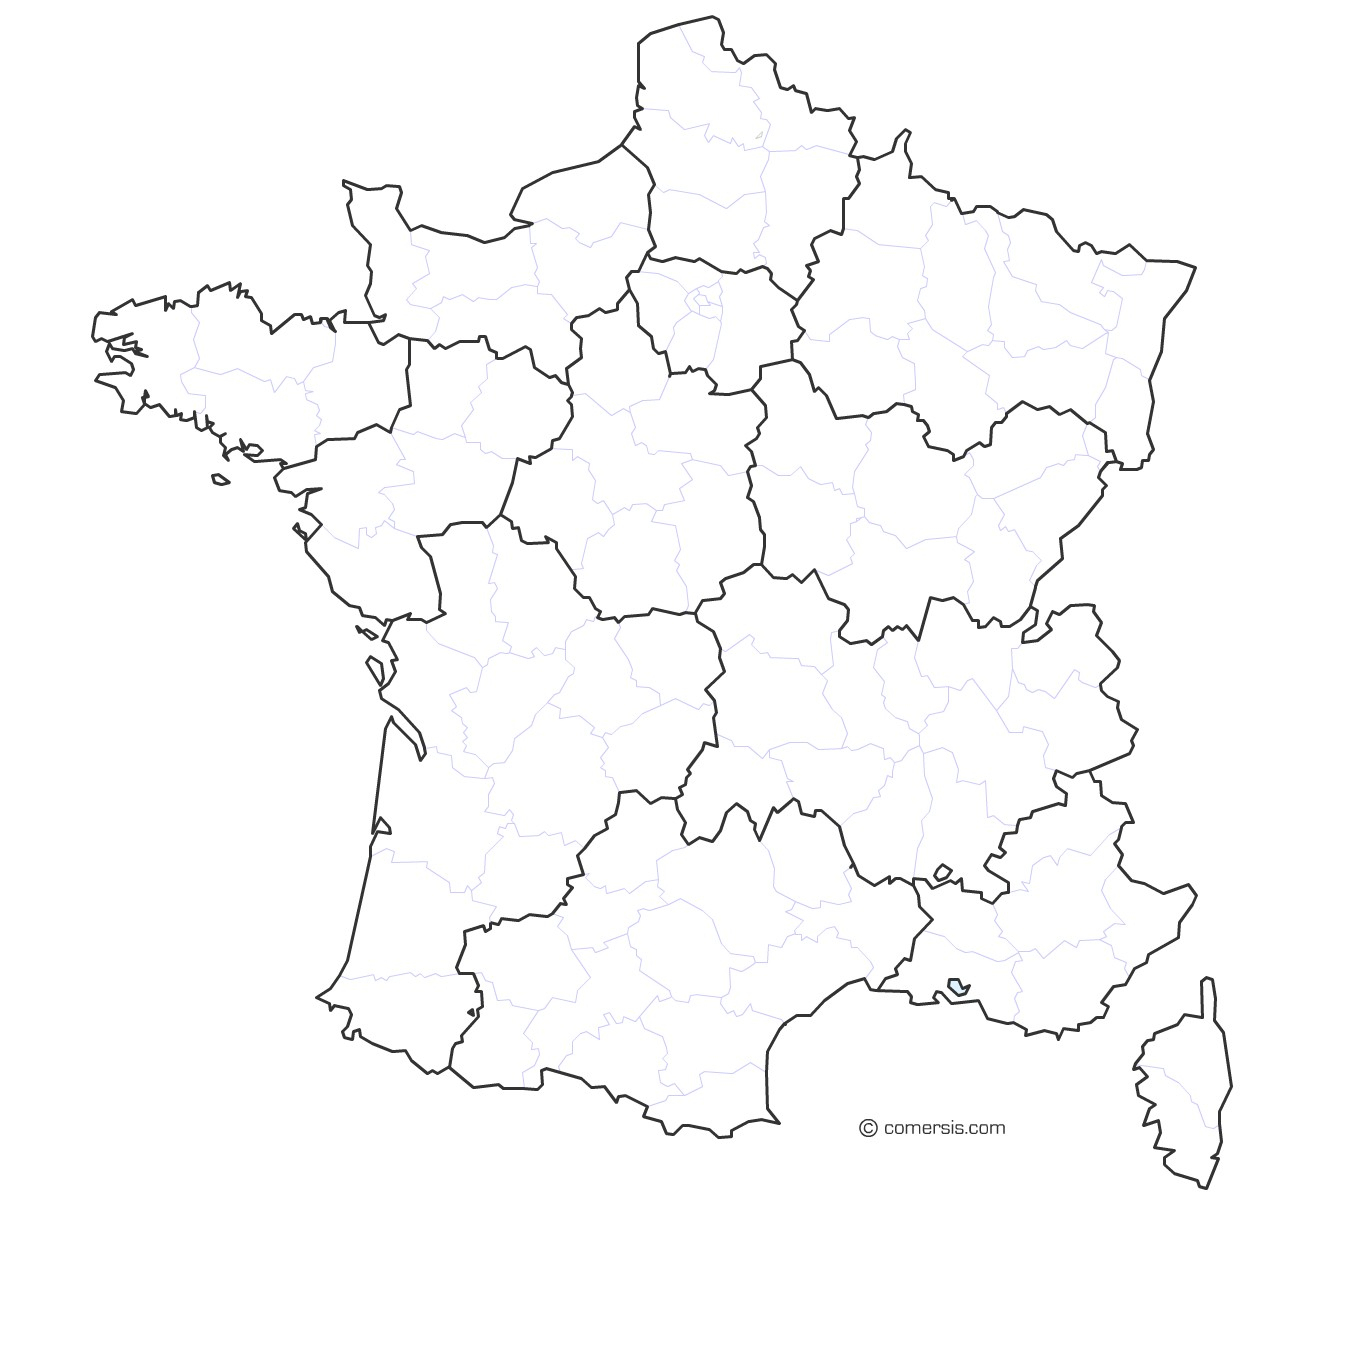 Cartes Vectorielles France concernant Carte De France Avec Region